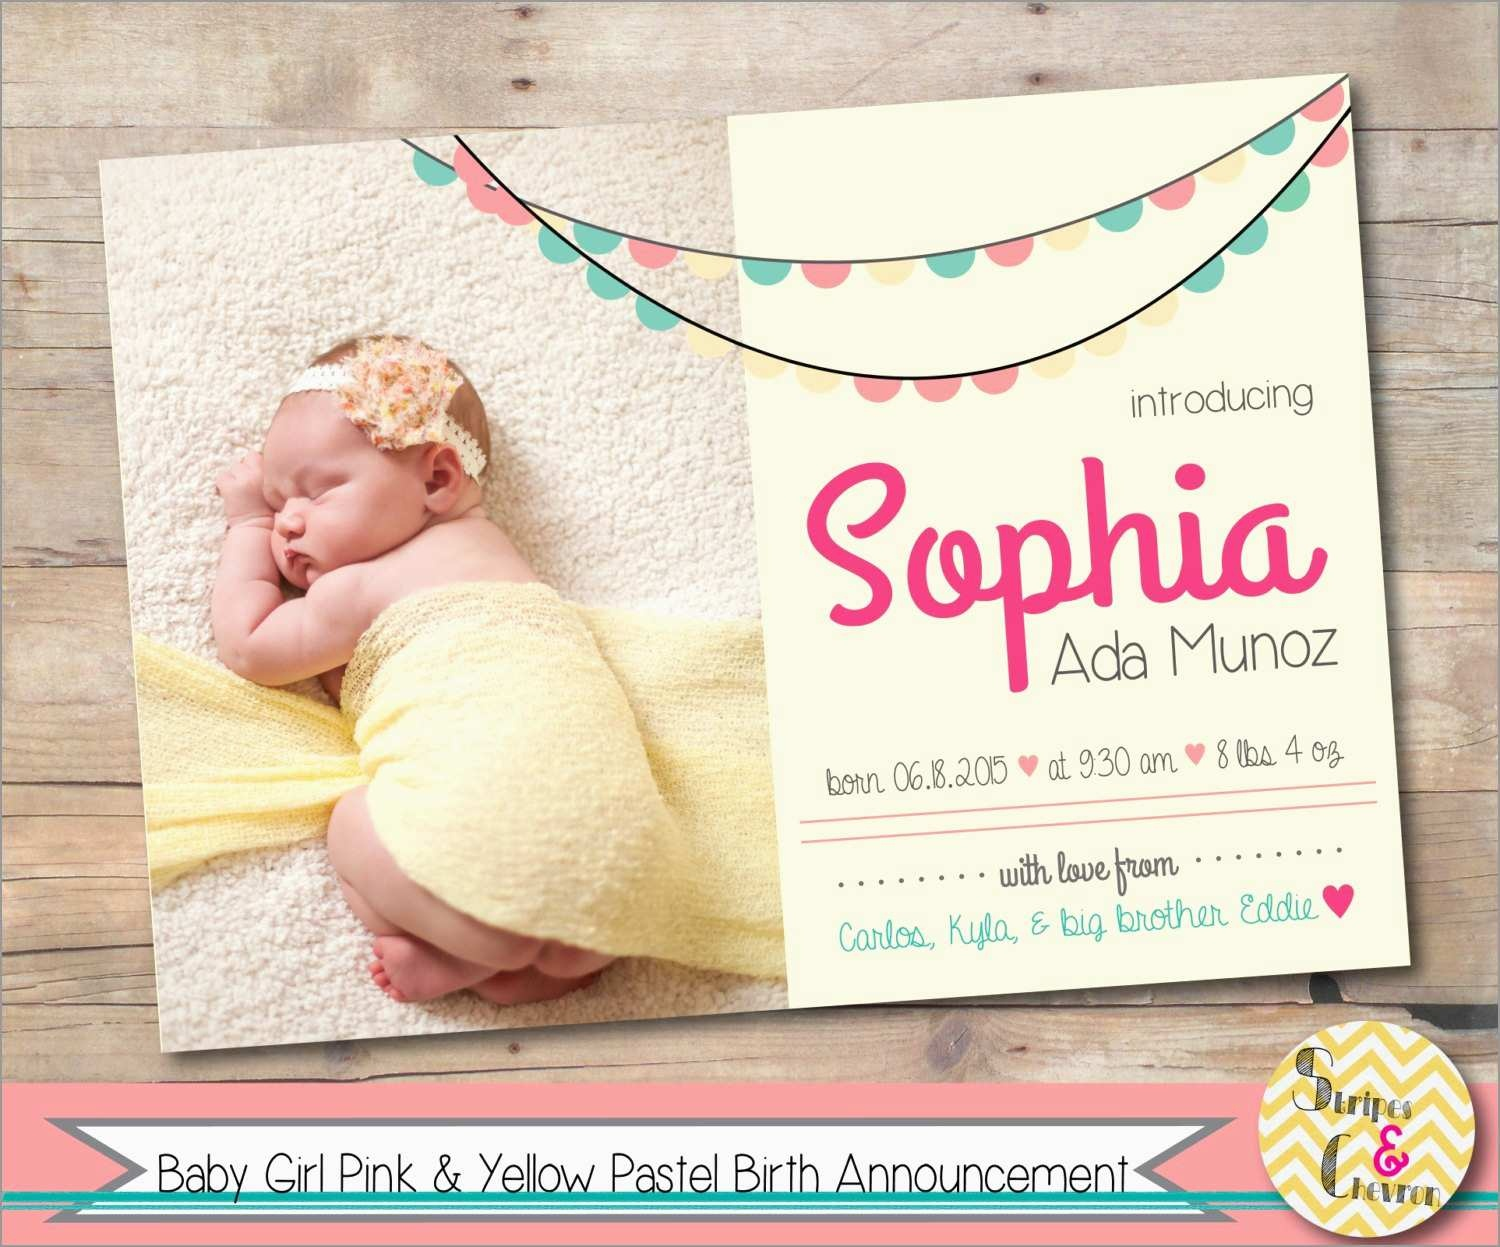 Luxury Birth Announcement Template Free Printable | Best Of Template - Free Birth Announcements Printable